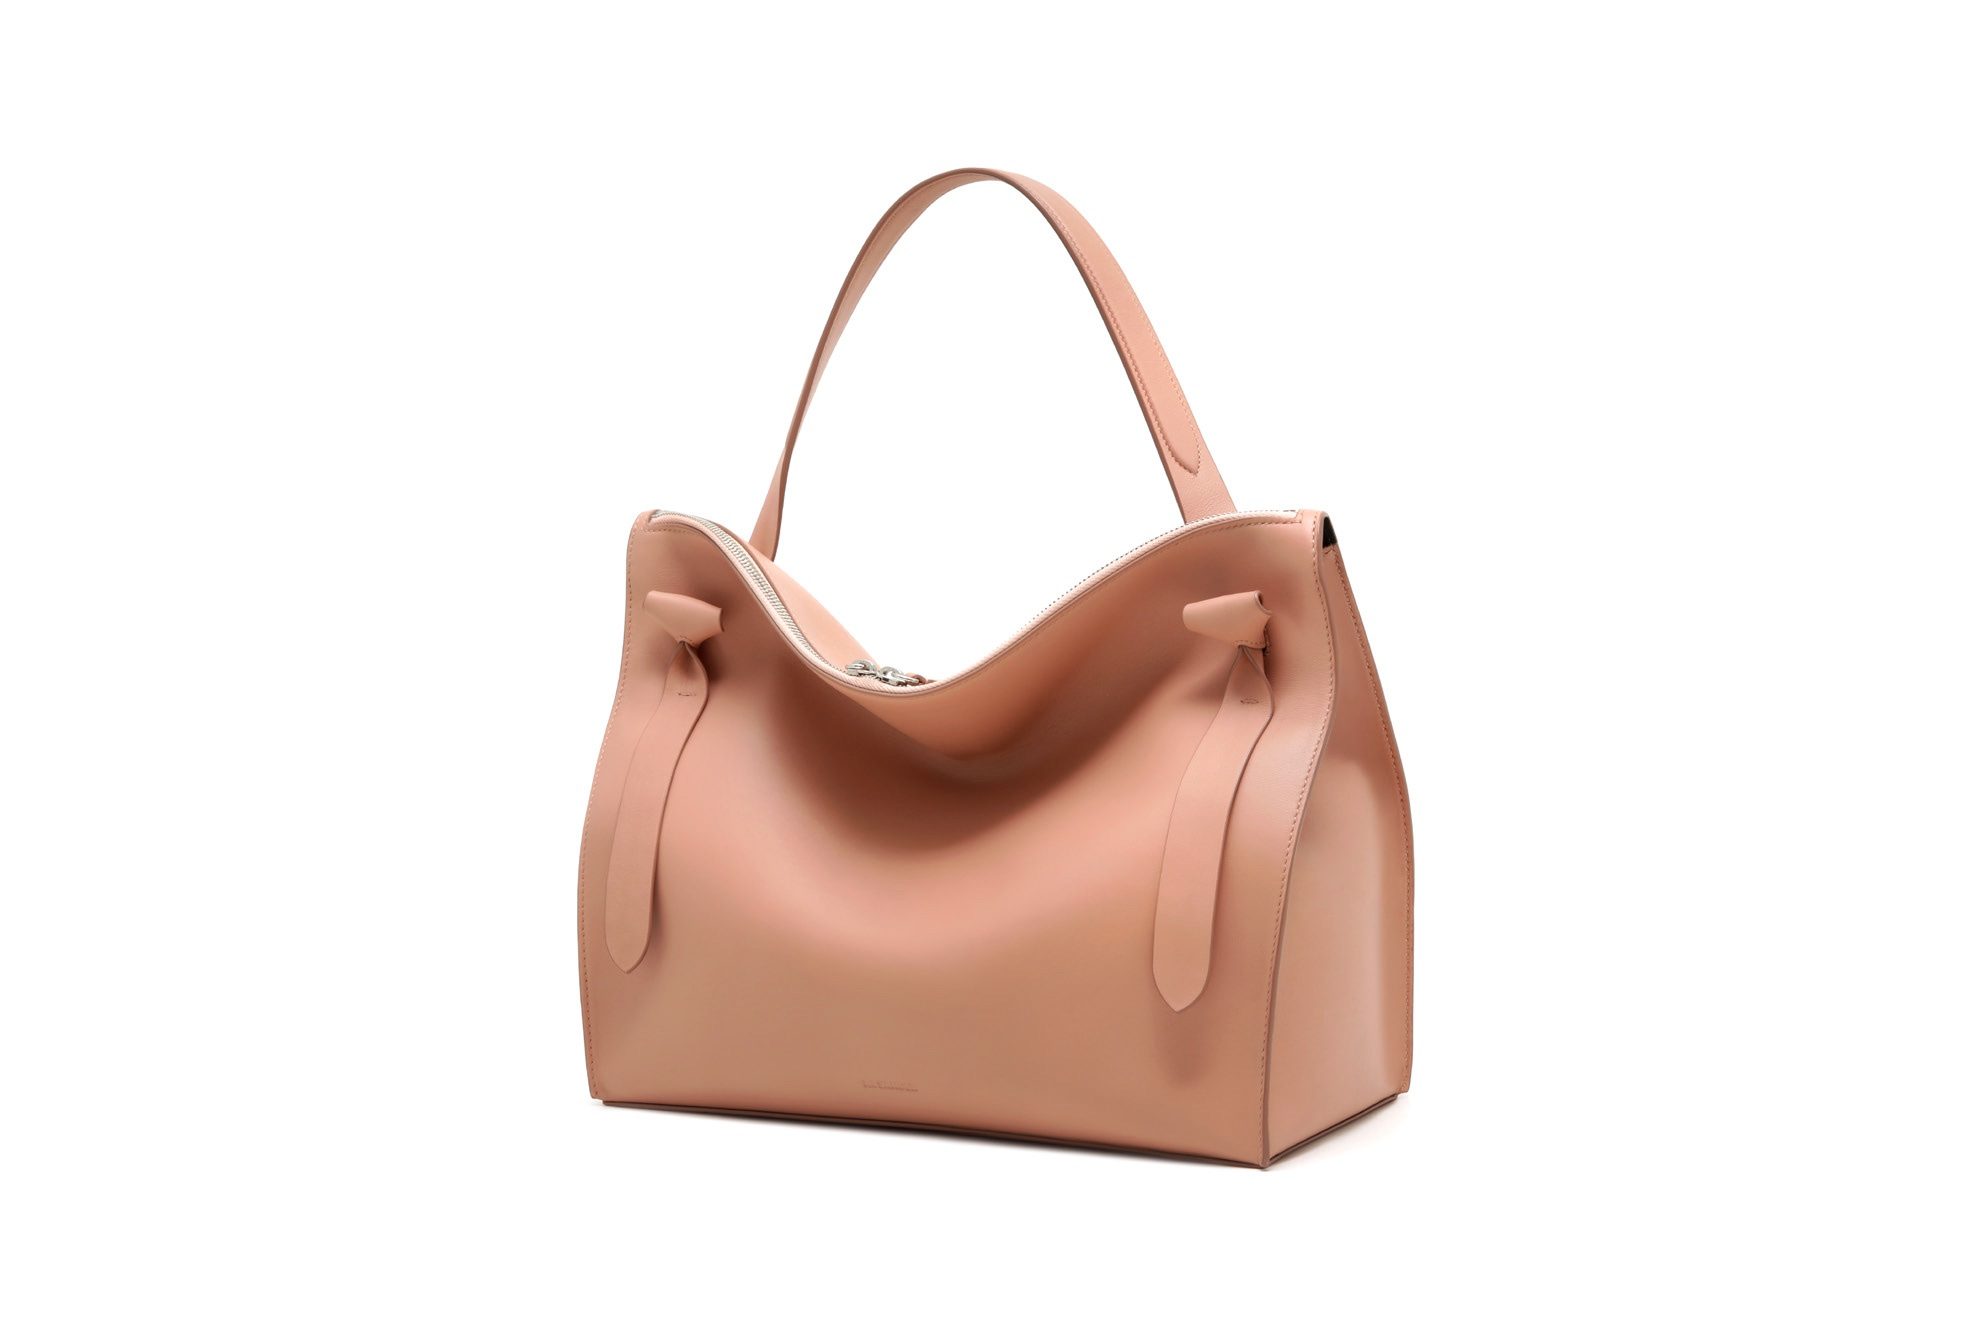 JIL SANDER Hill Bag 1